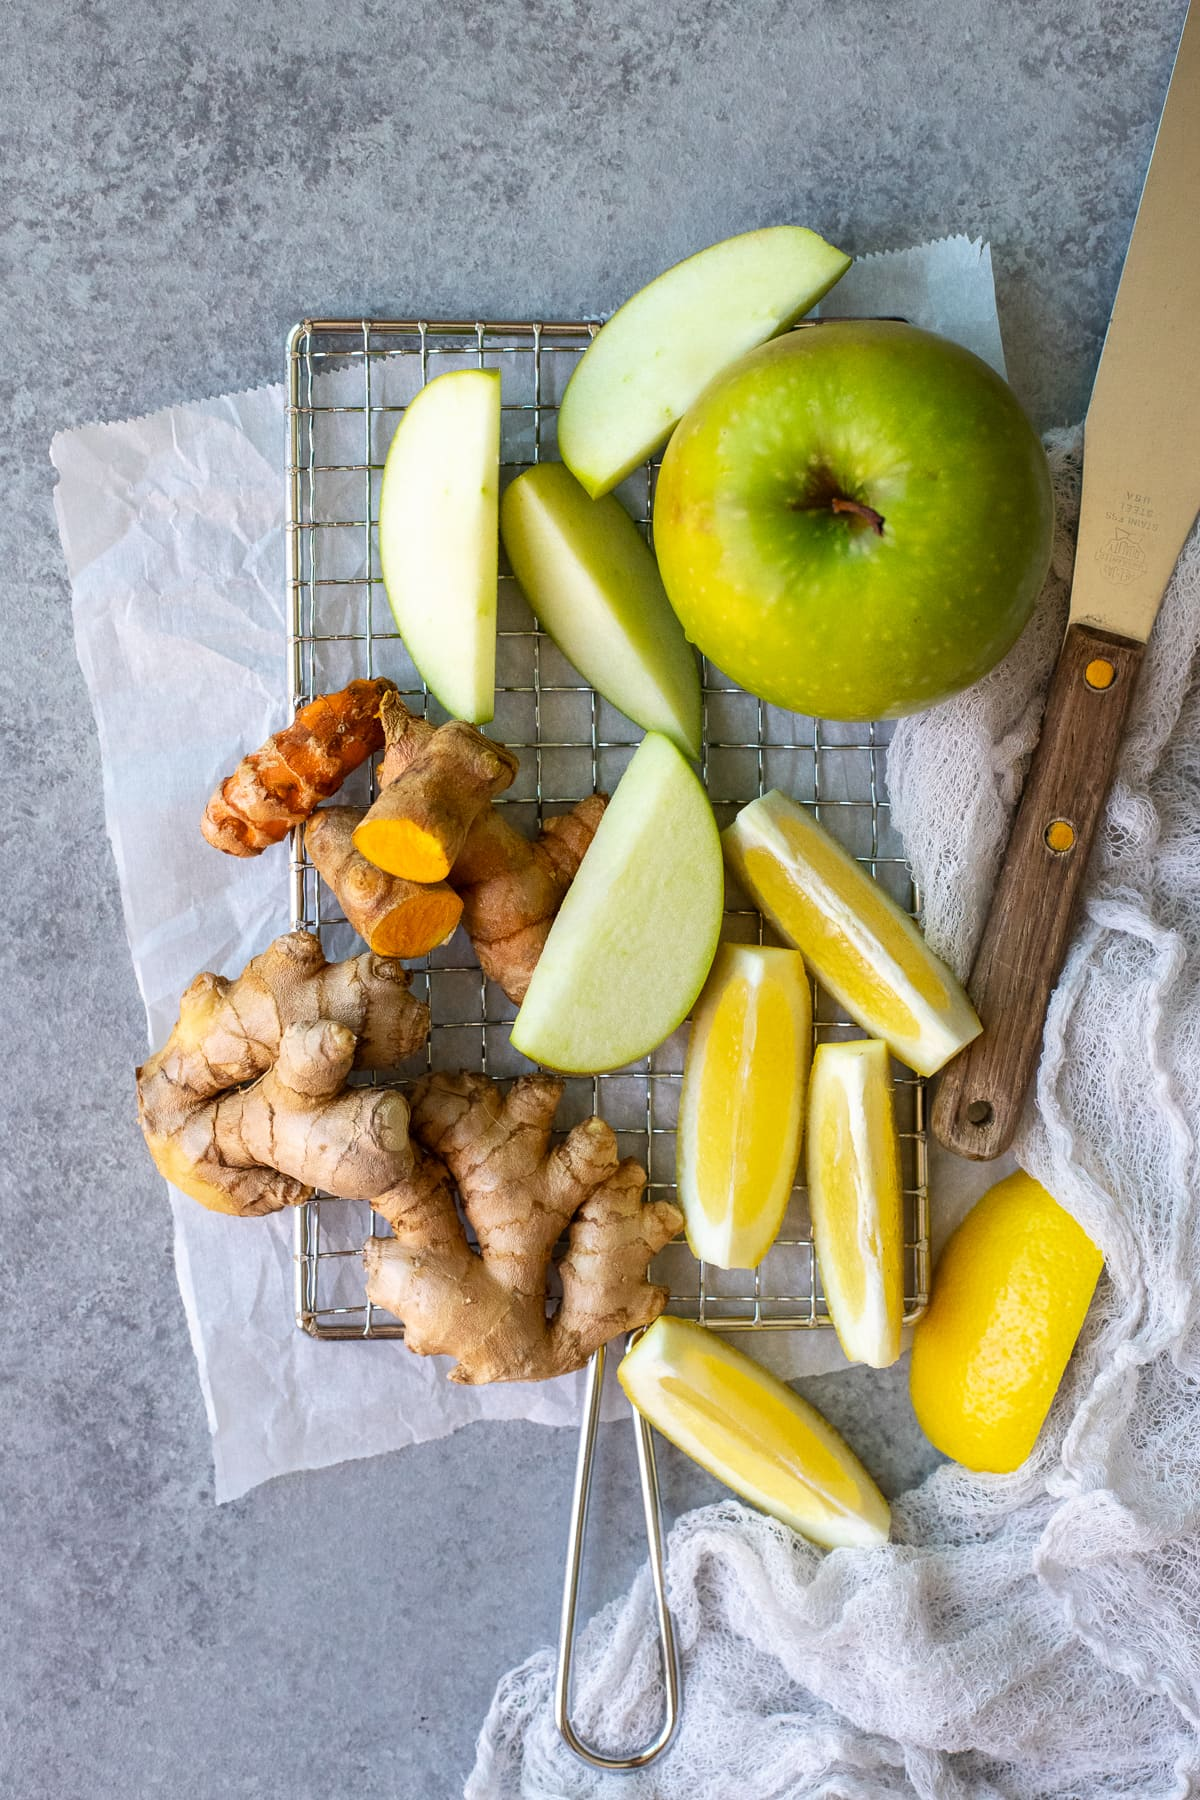 Ingredients being prepped for juicing - apples, lemons, turmeric, and ginger.